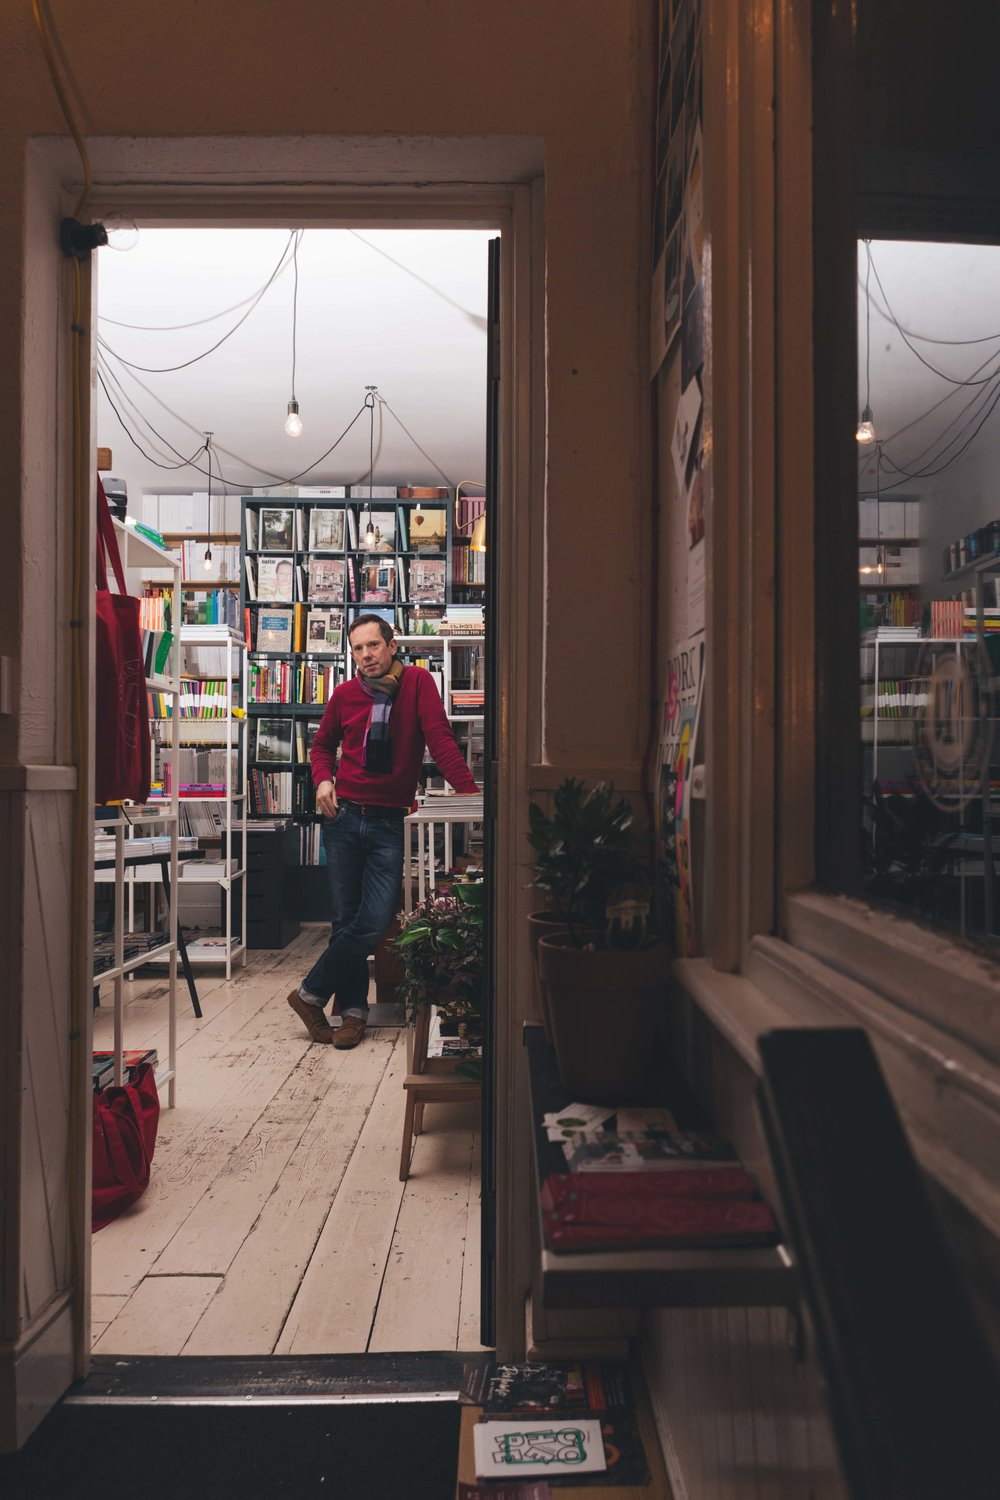 man in bookshop doorway, illuminated and lit up and surrounded by books